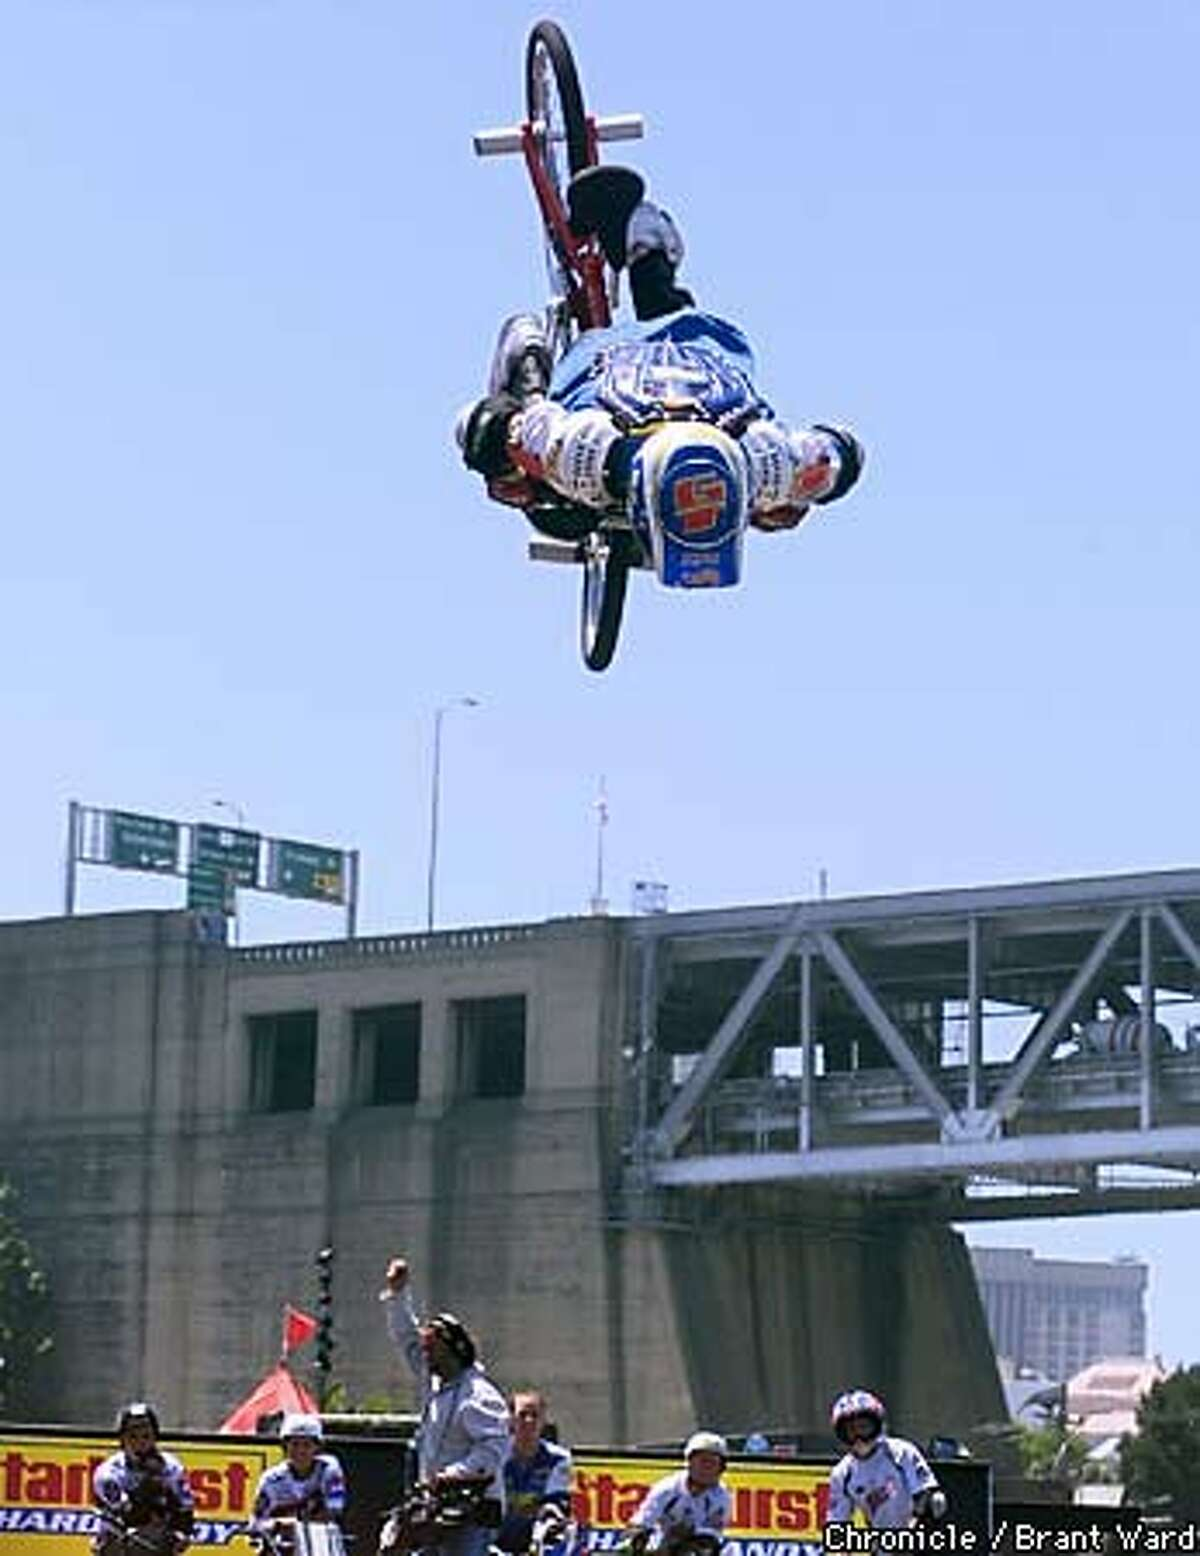 Dave Voelker of Lakeside California placed well in the preliminary Street Bicycle Stunt competitio n held Friday at the X-Games being held at Pier 30 and 32. Chronicle Photo by Brant Ward